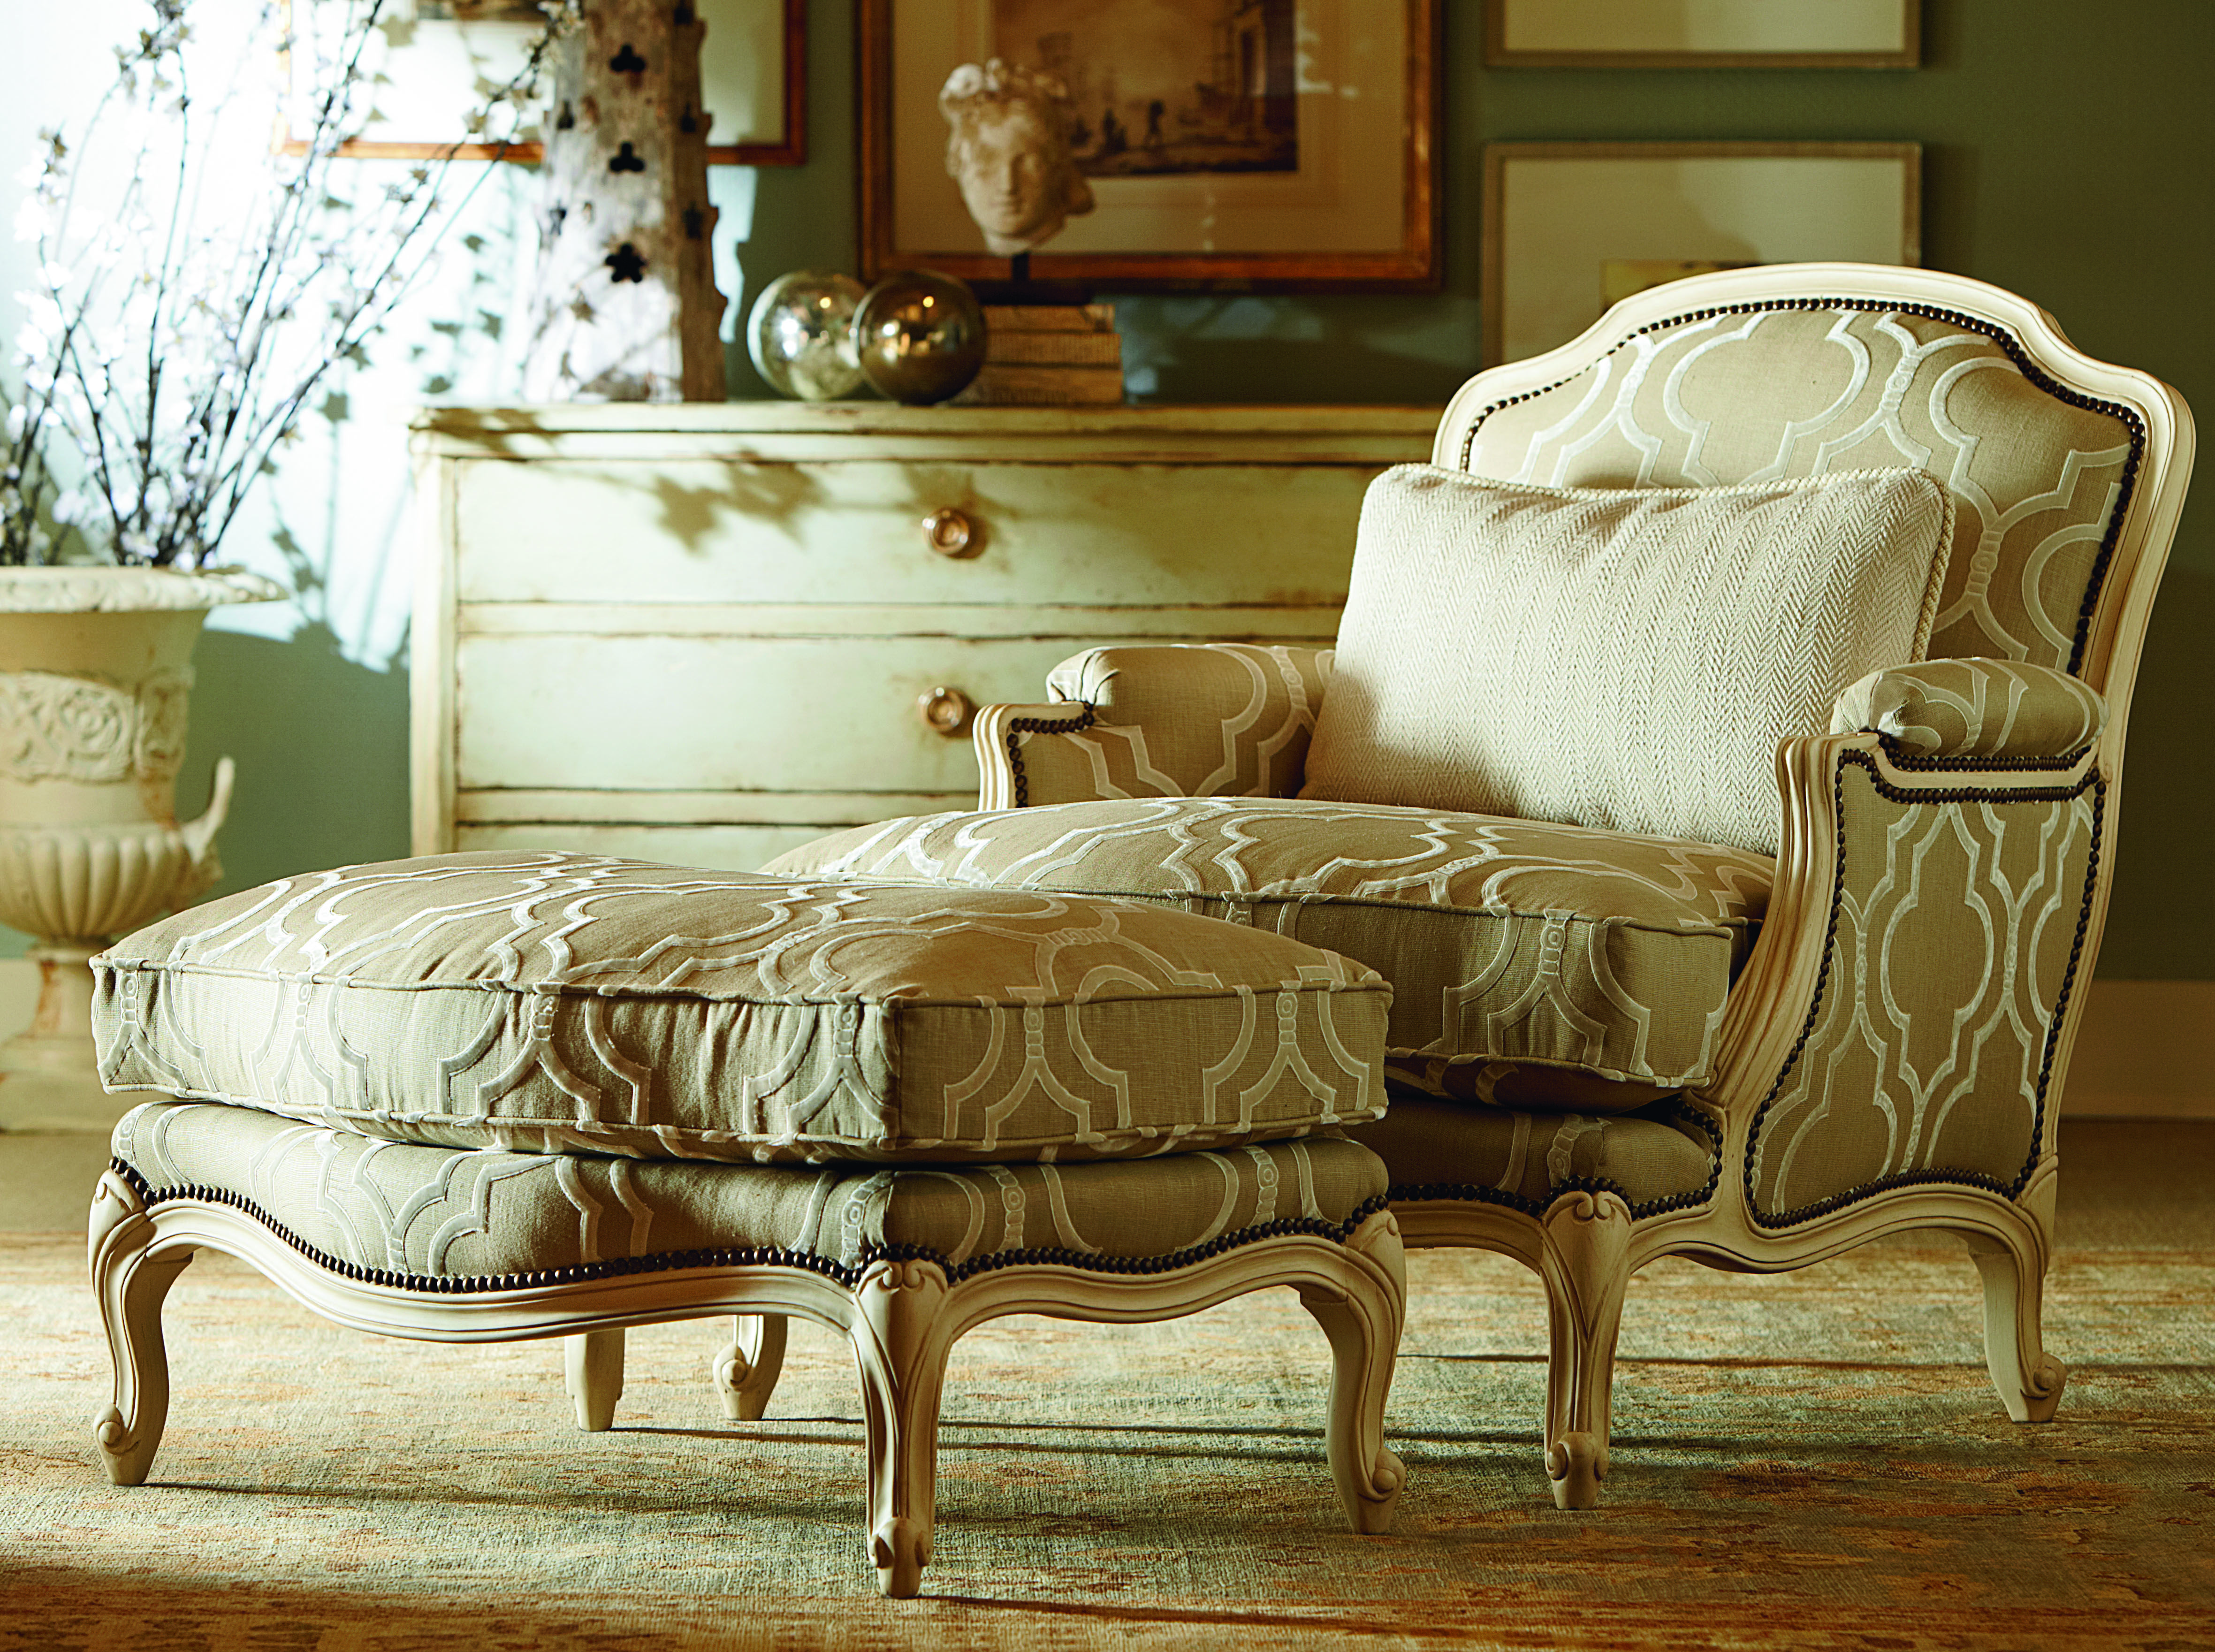 The Francoise Chair And Ottoman From Century Furniture Available At Seldens In Tacoma Wa